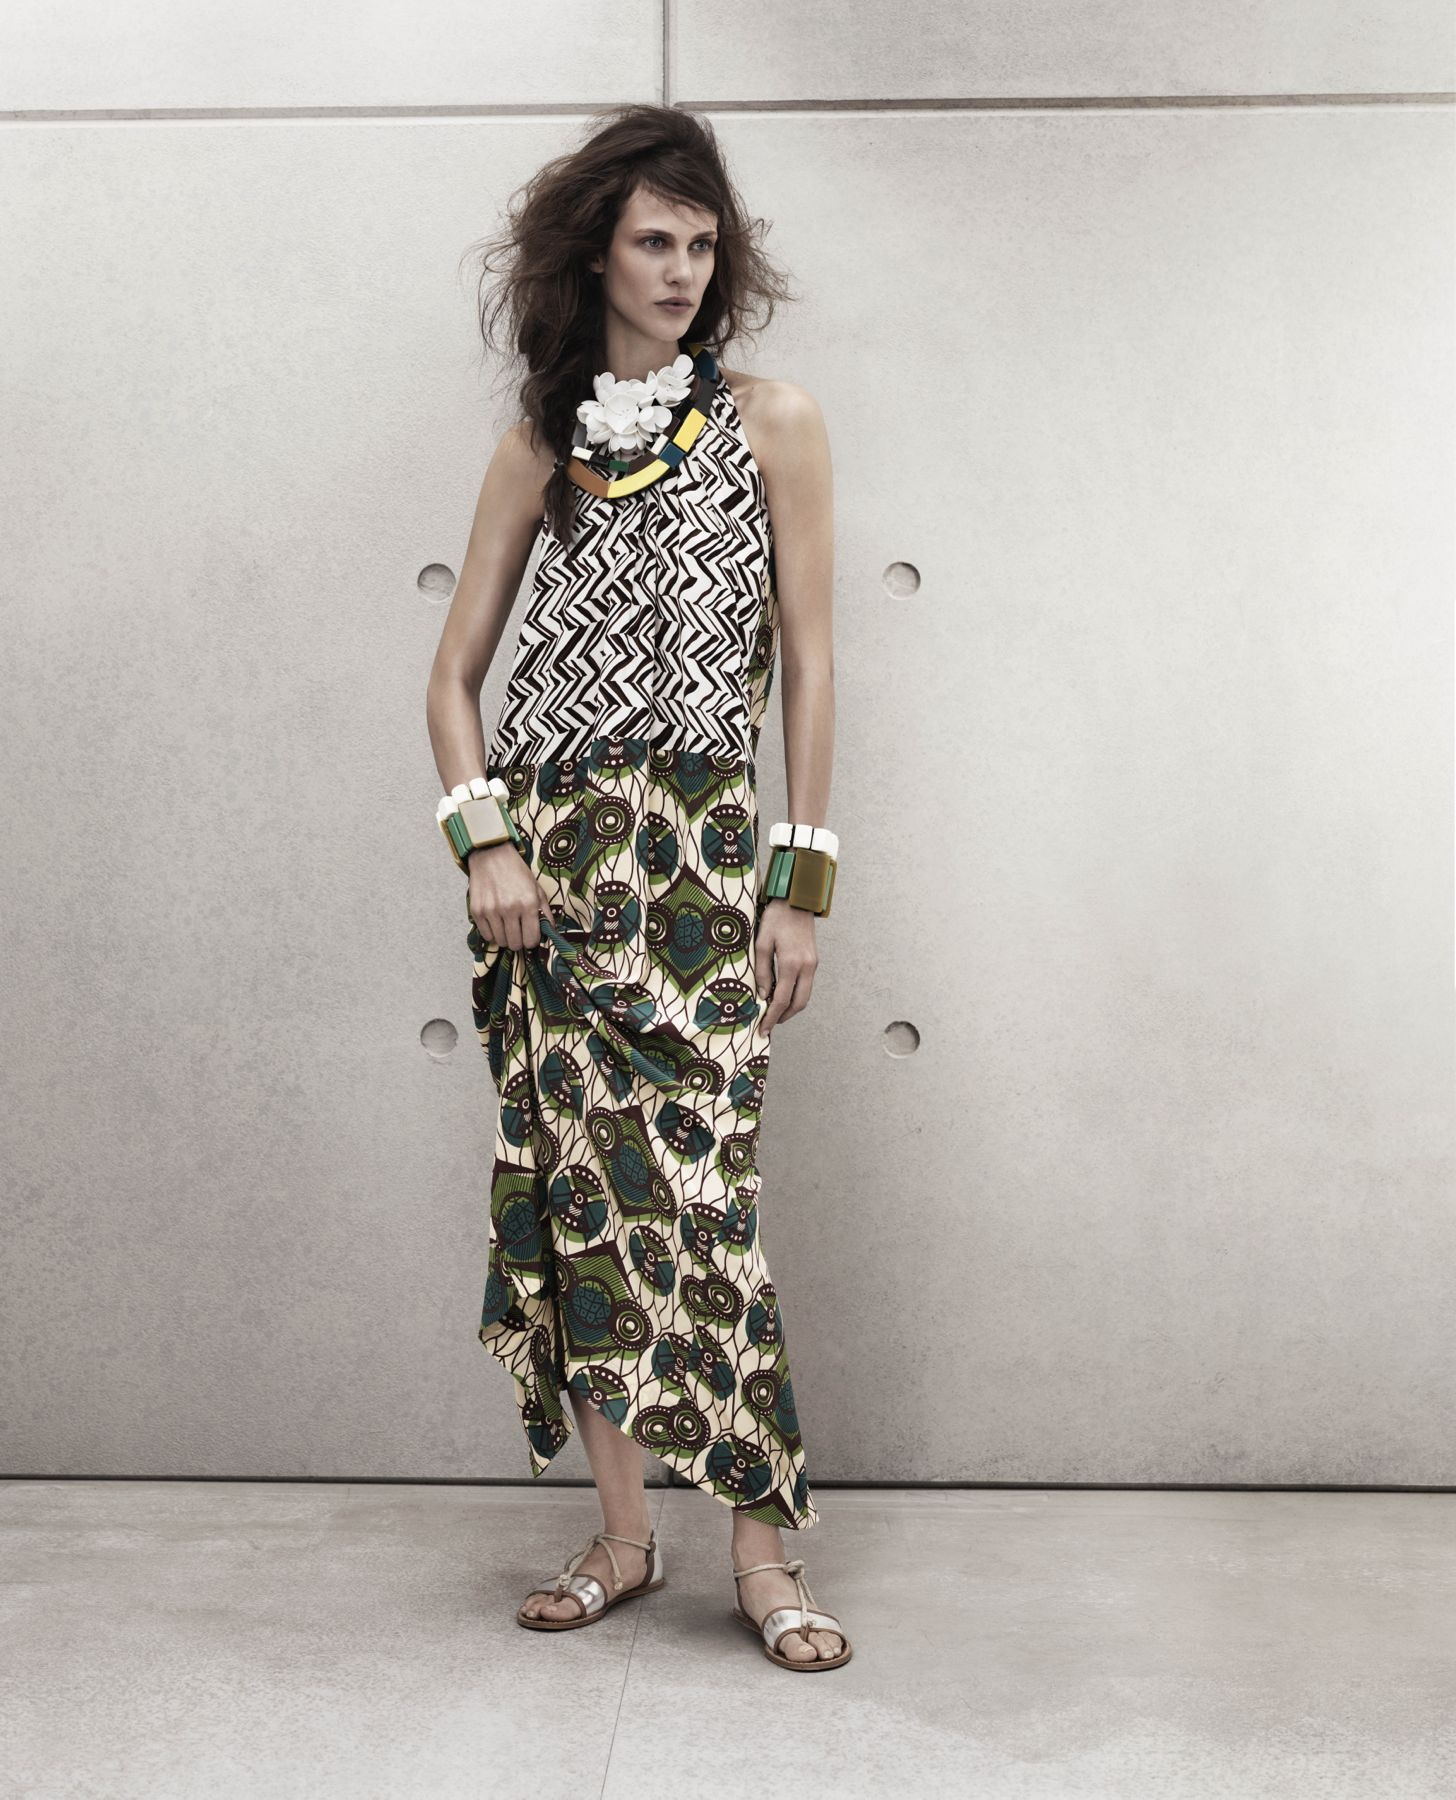 Marni for H&M Women's Collection